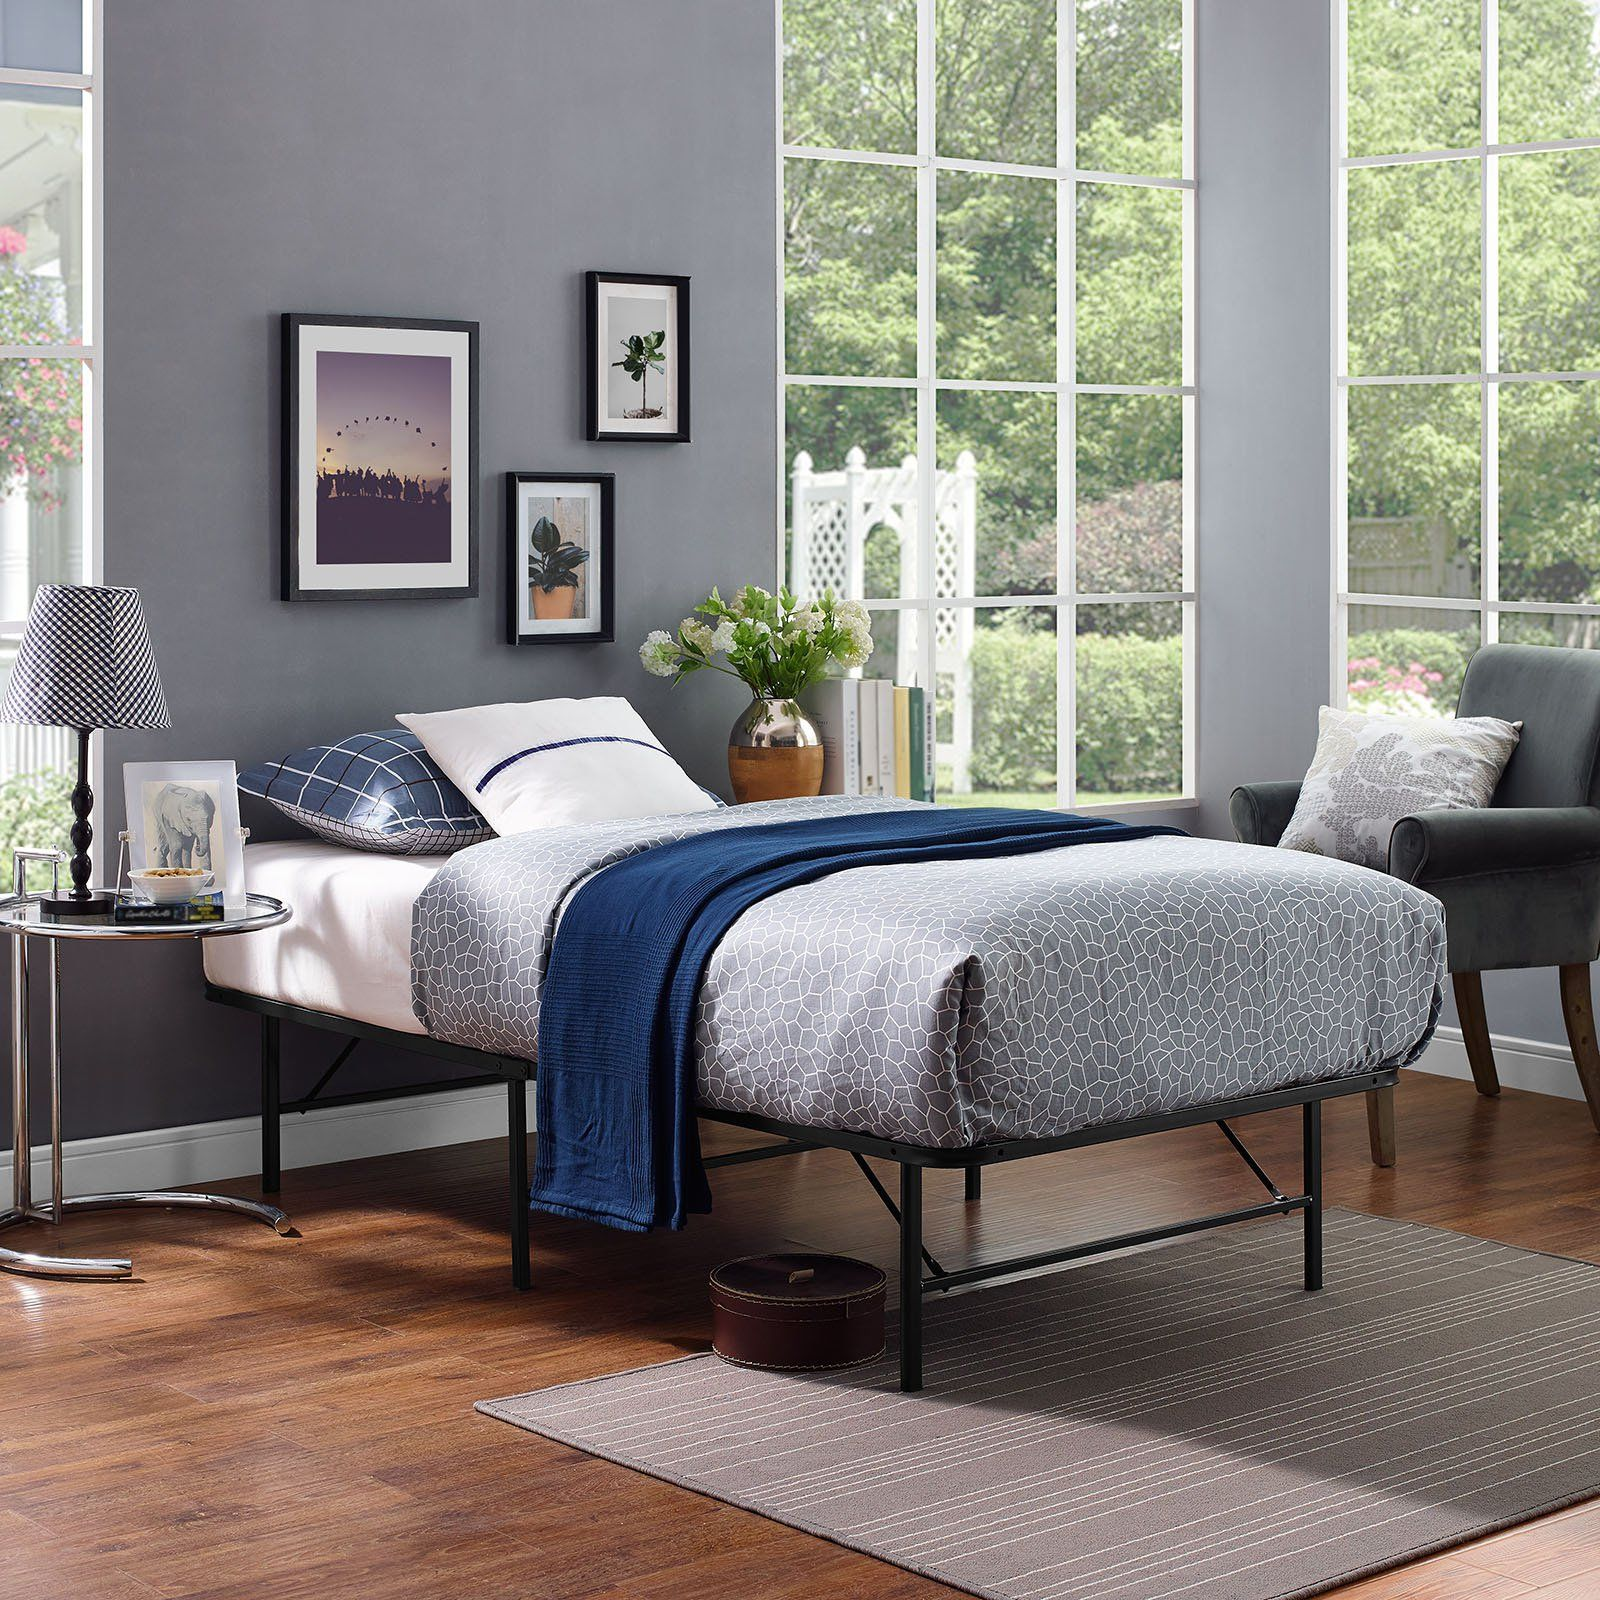 Modway Horizons Stainless Steel Bed Frame (With images